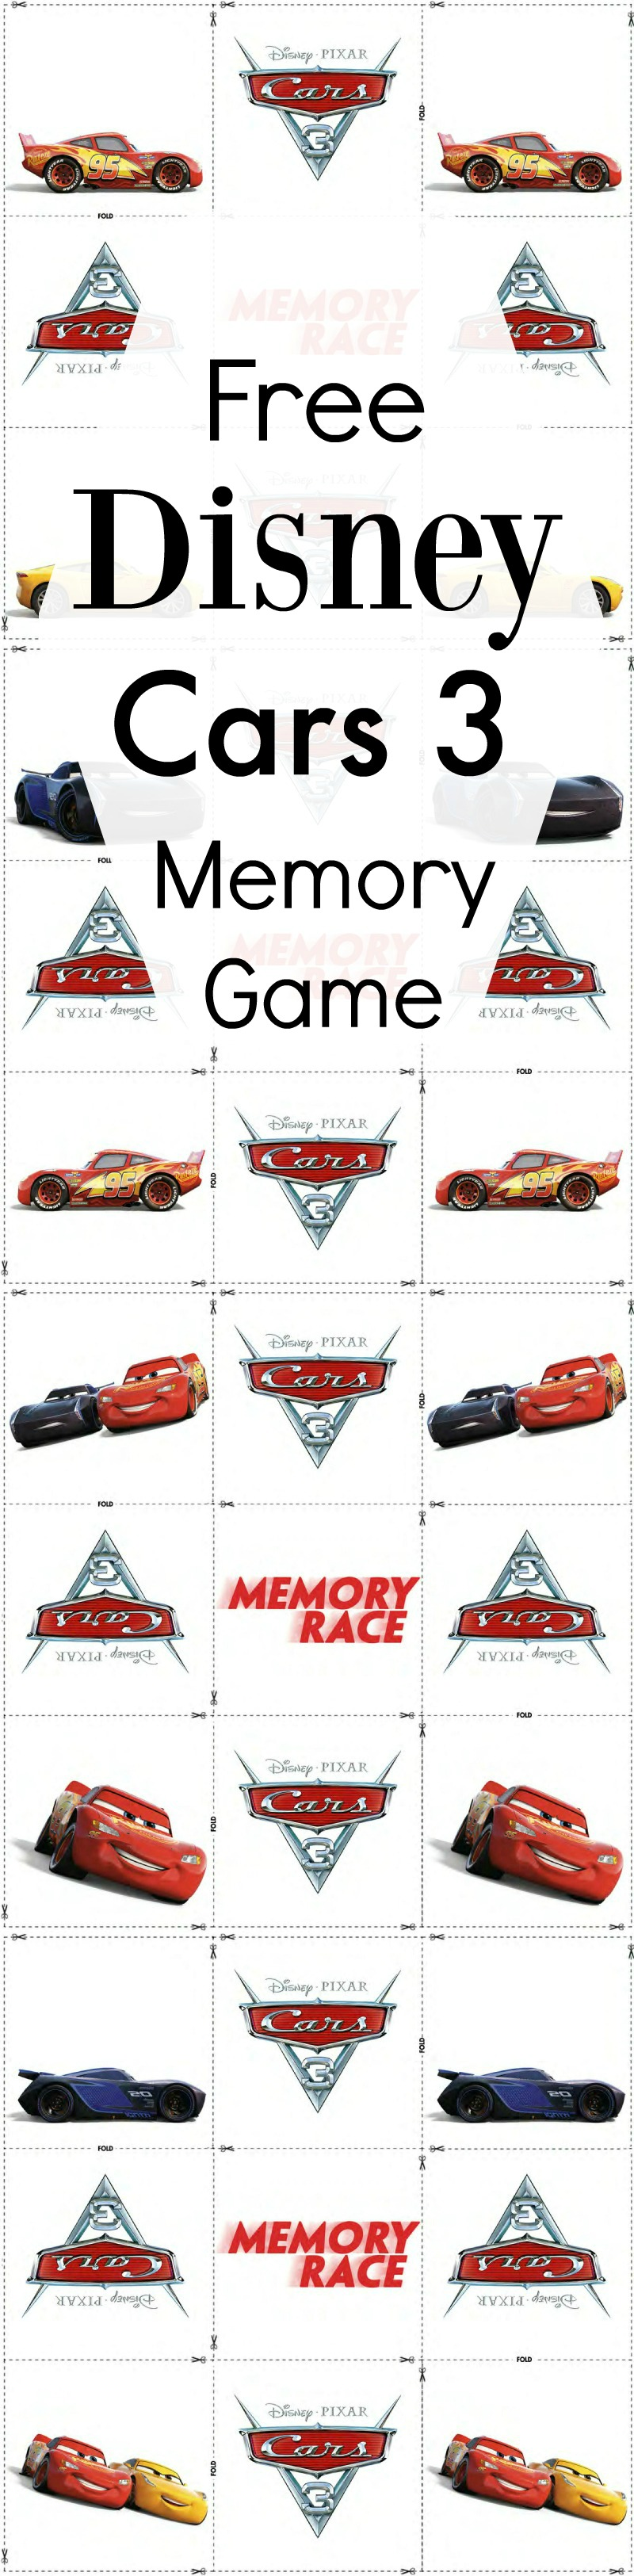 Free Disney Cars 3 Memory Match Game - Printable Memory Cards